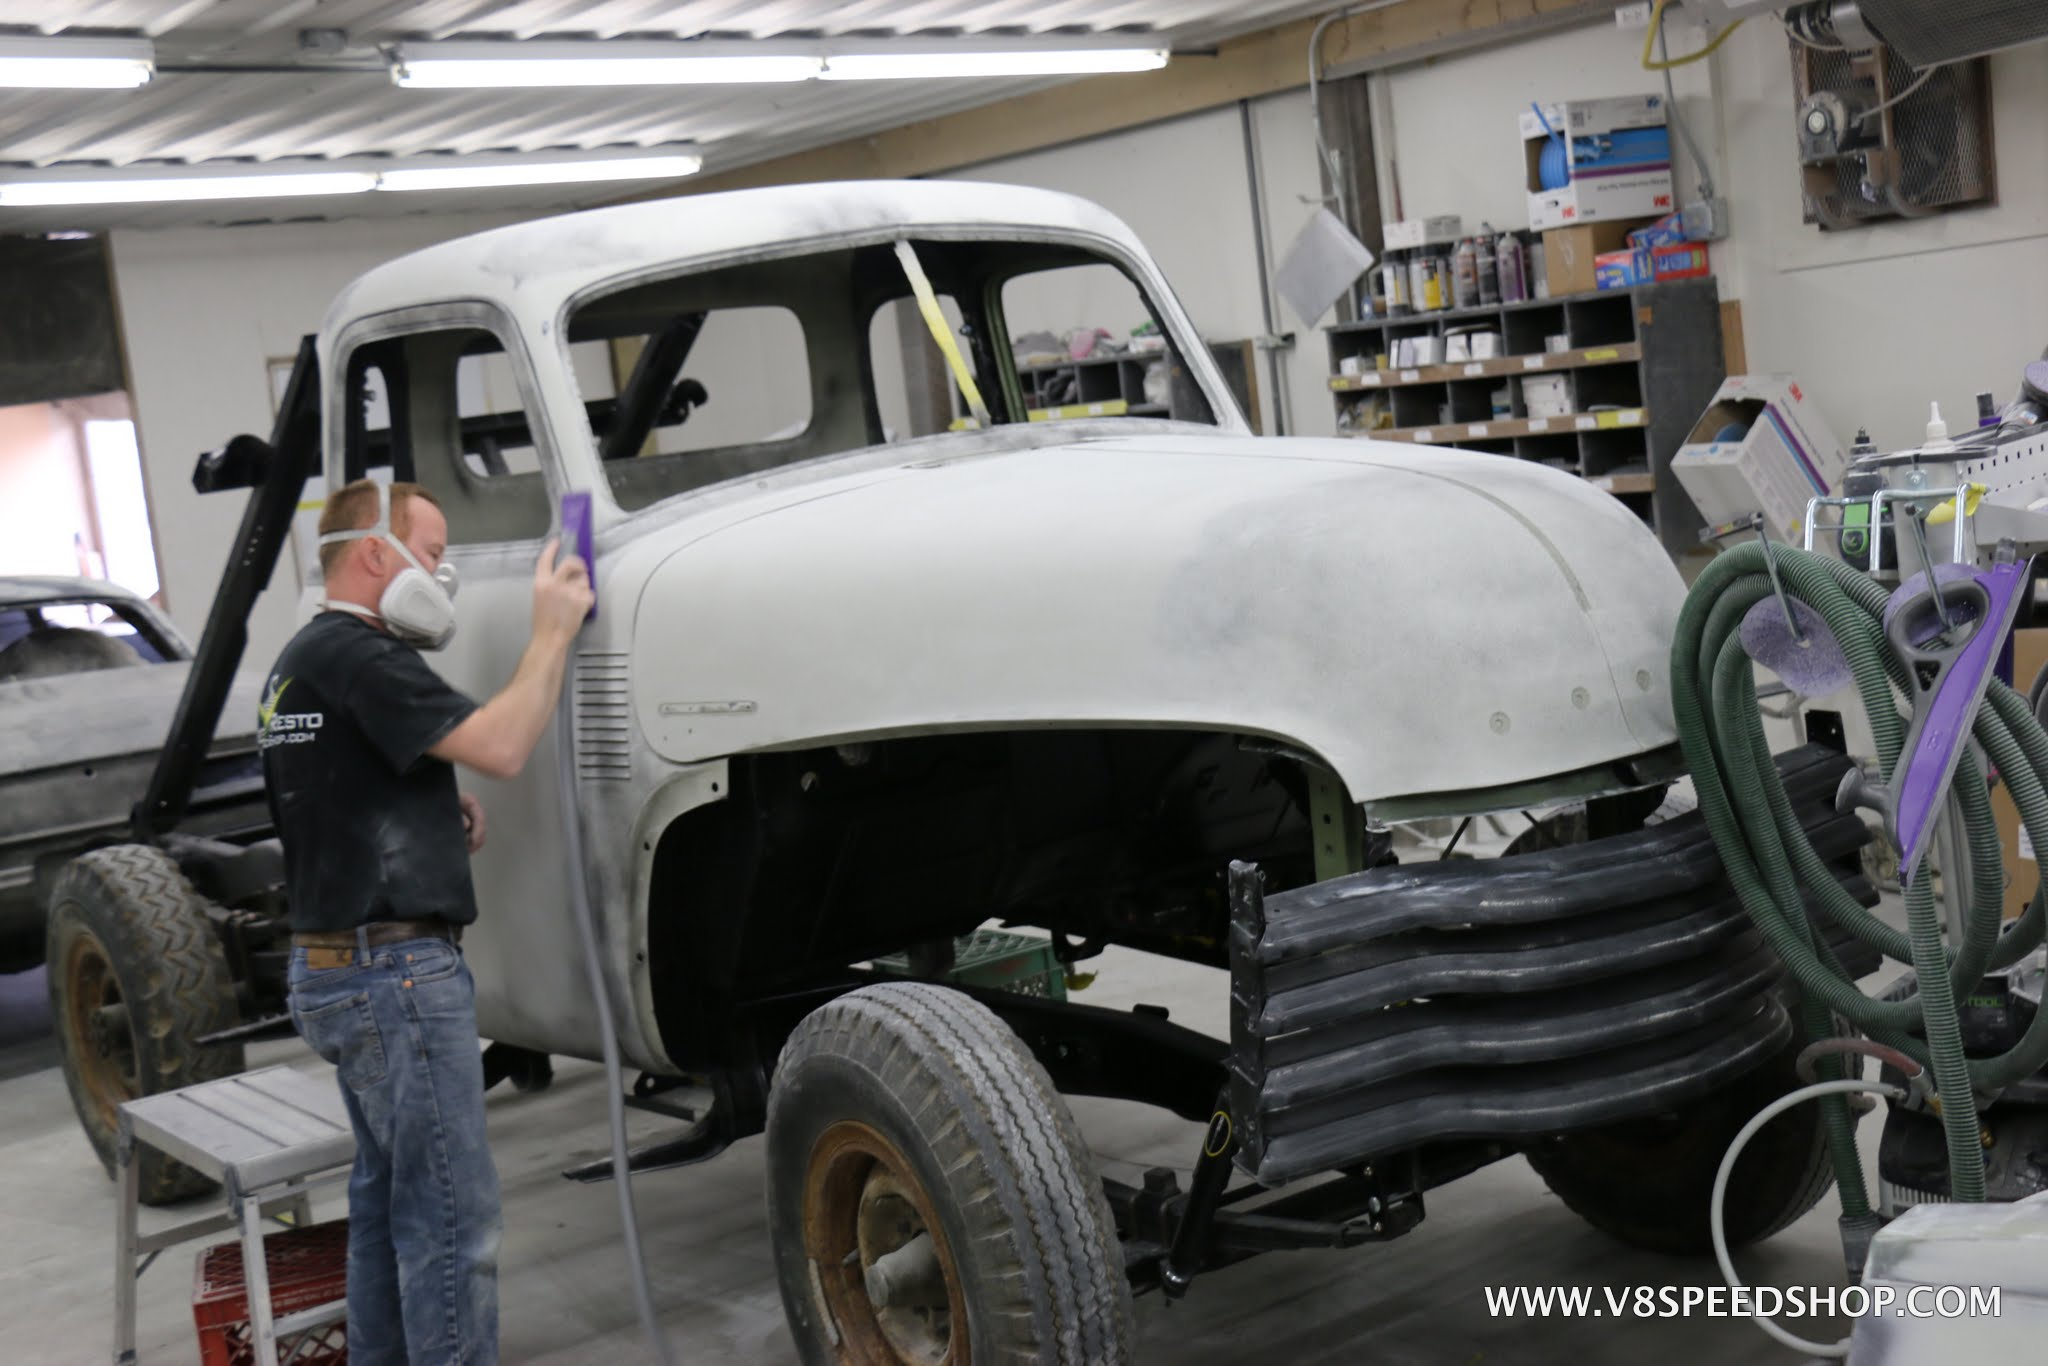 1951 Chevrolet Dump Pickup Truck Restoration Photo Gallery V8tv Page 6 Of 8 Click To Enlarge Image Chevy Pu Gh 04 11 17 0039